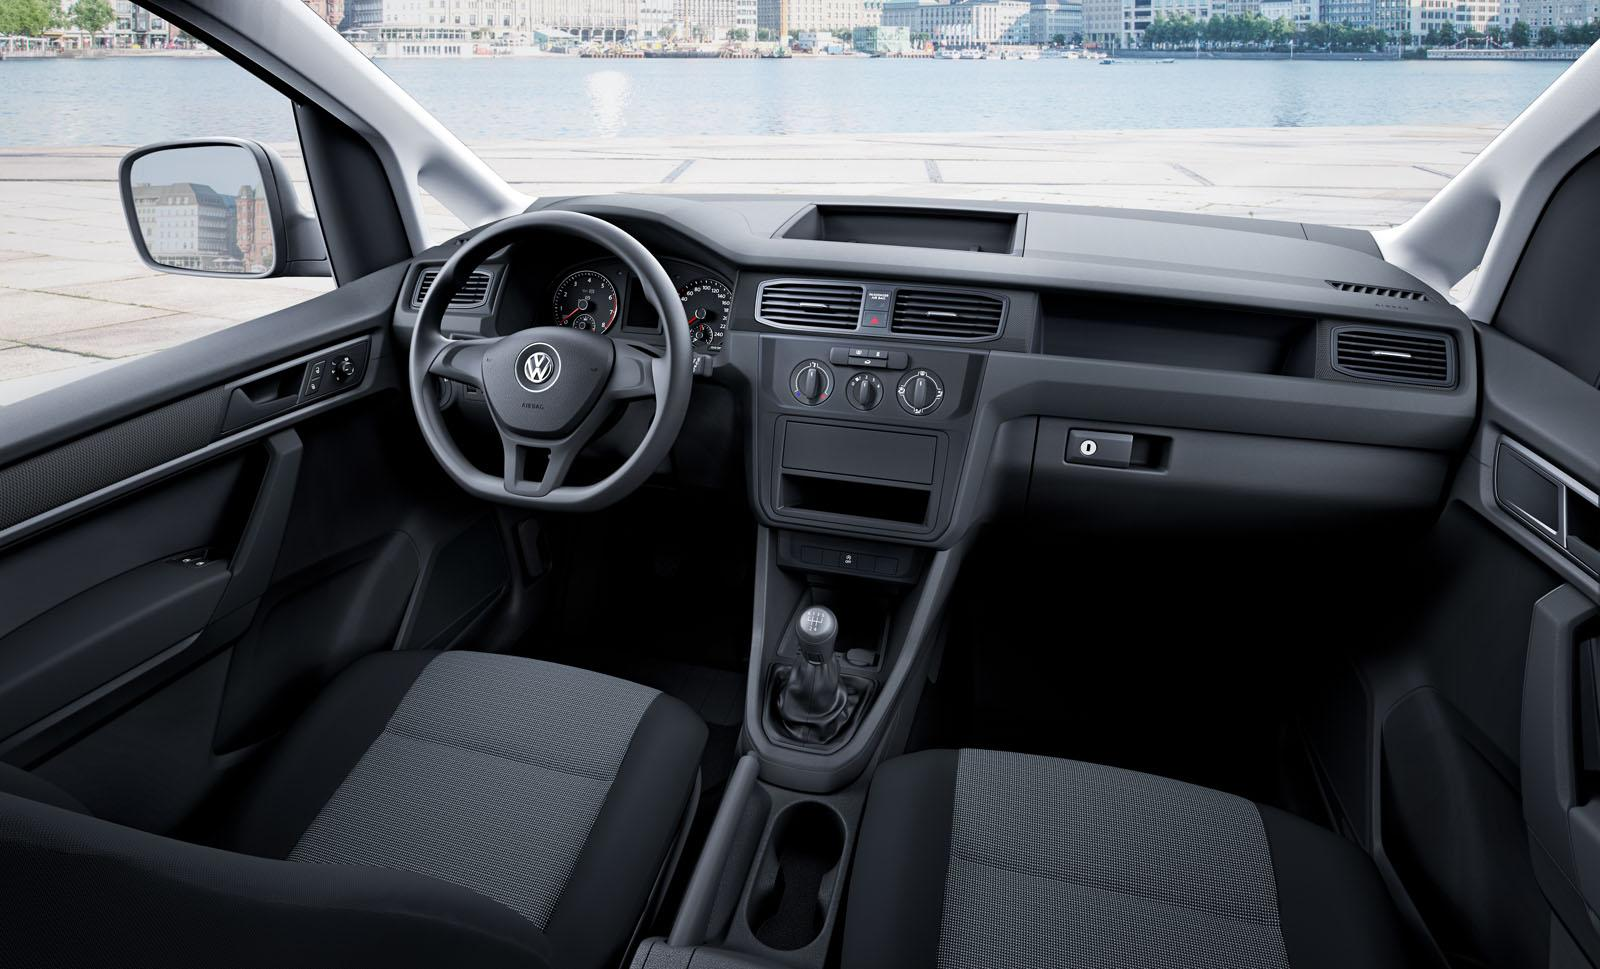 2015 Volkswagen Caddy New Looks Euro 6 Engines Paul Tan